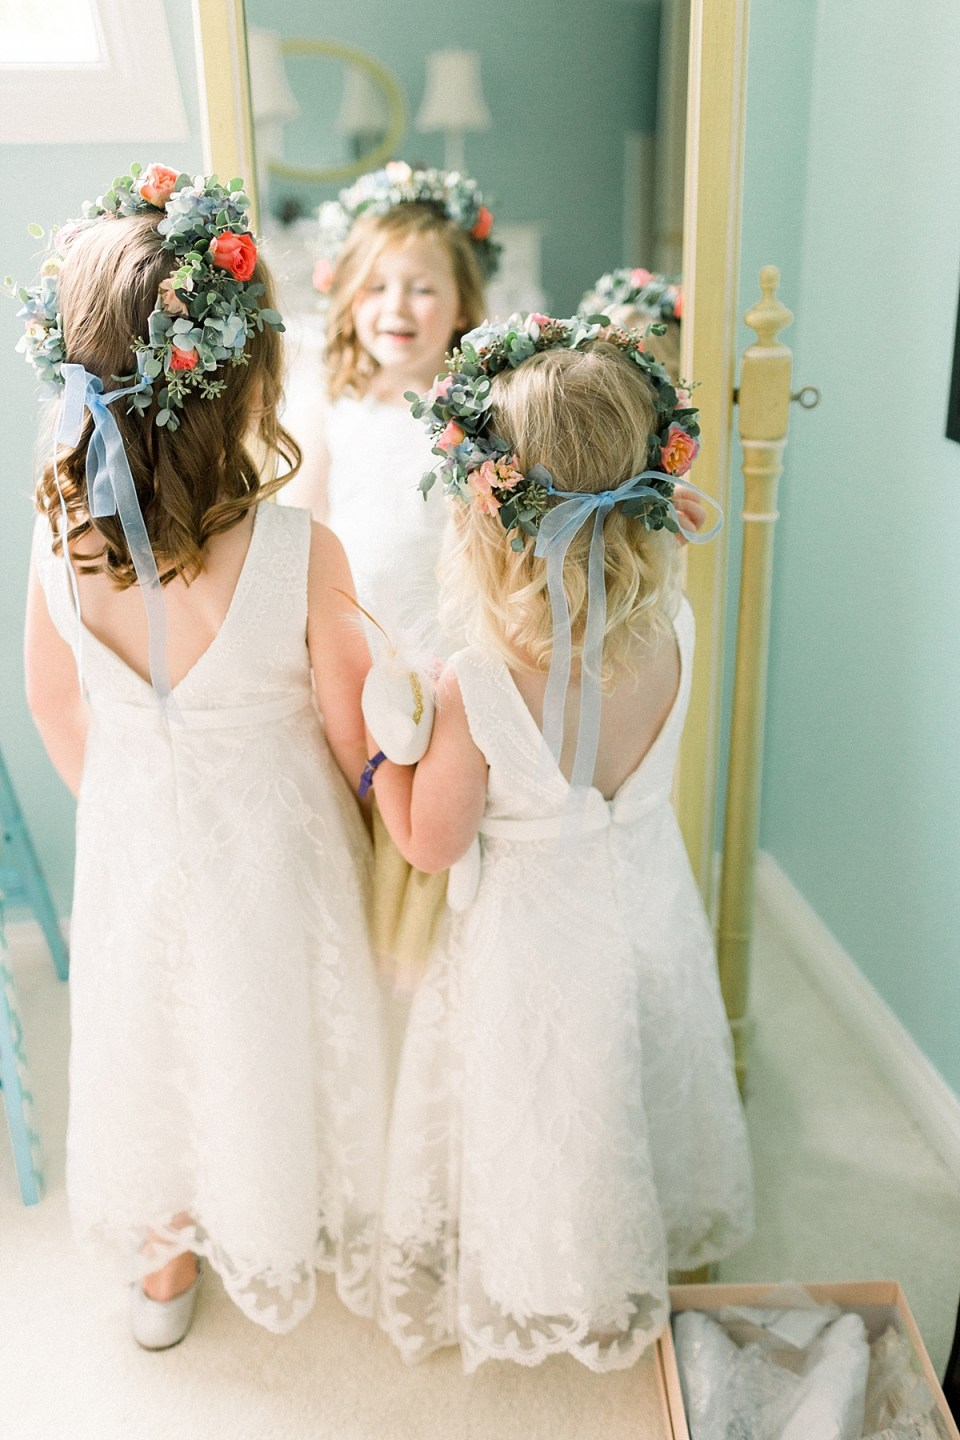 Arielle Peters Photography | Flower girls in flower crowns and dresses at Sycamore Hills Golf Club in Fort Wayne, Indiana on wedding day.